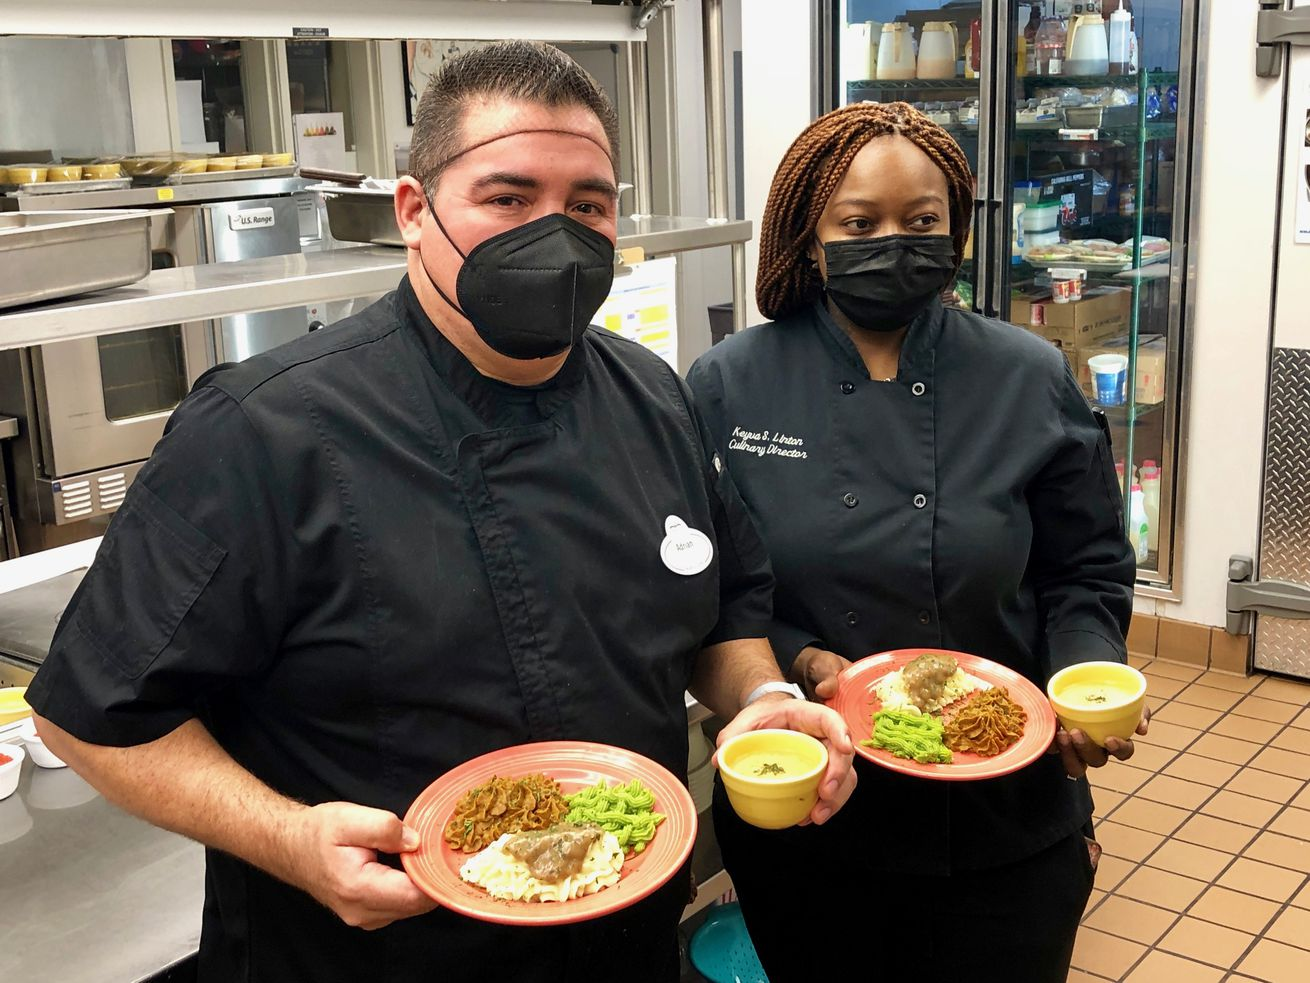 Chefs Adrian Arias, left, and Keyva S. Linton show off plates of pureed food that has been styled back into its original shapes at Northbrook Inn, a memory care facility providing special meals to residents who have trouble swallowing due to dementia.